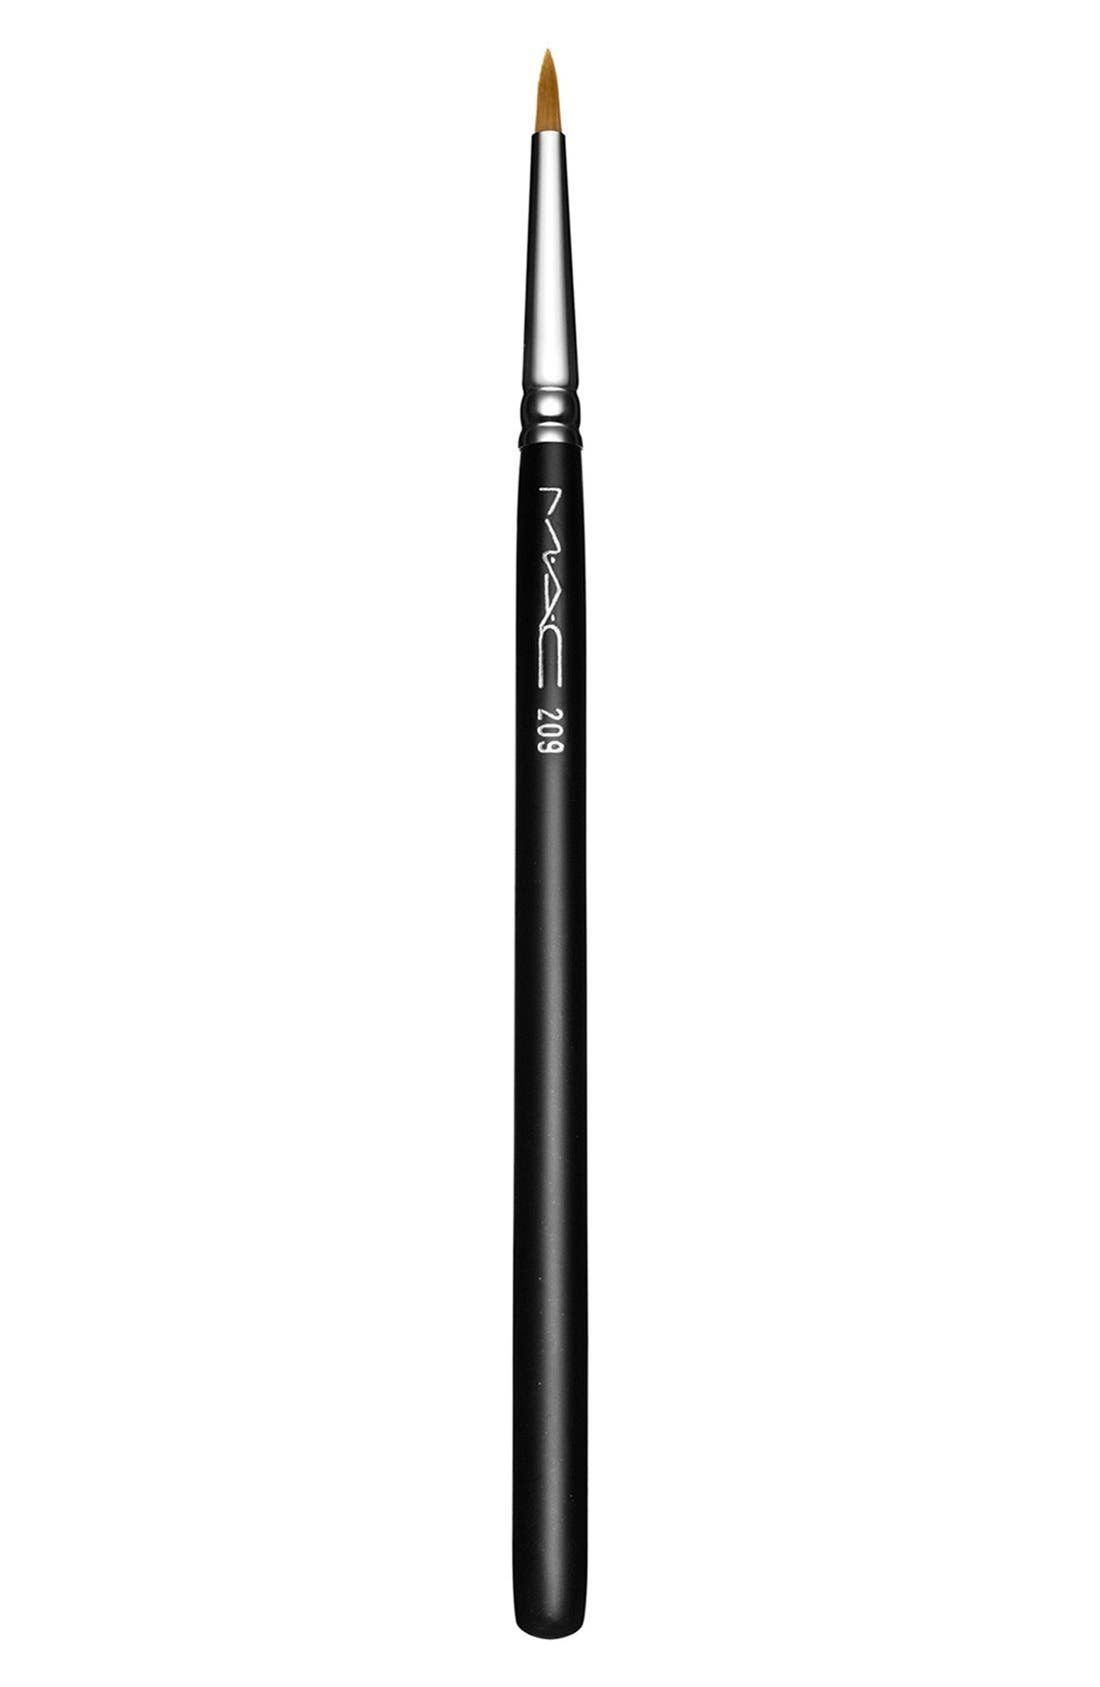 MAC 209 Eyeliner Brush,                             Main thumbnail 1, color,                             000